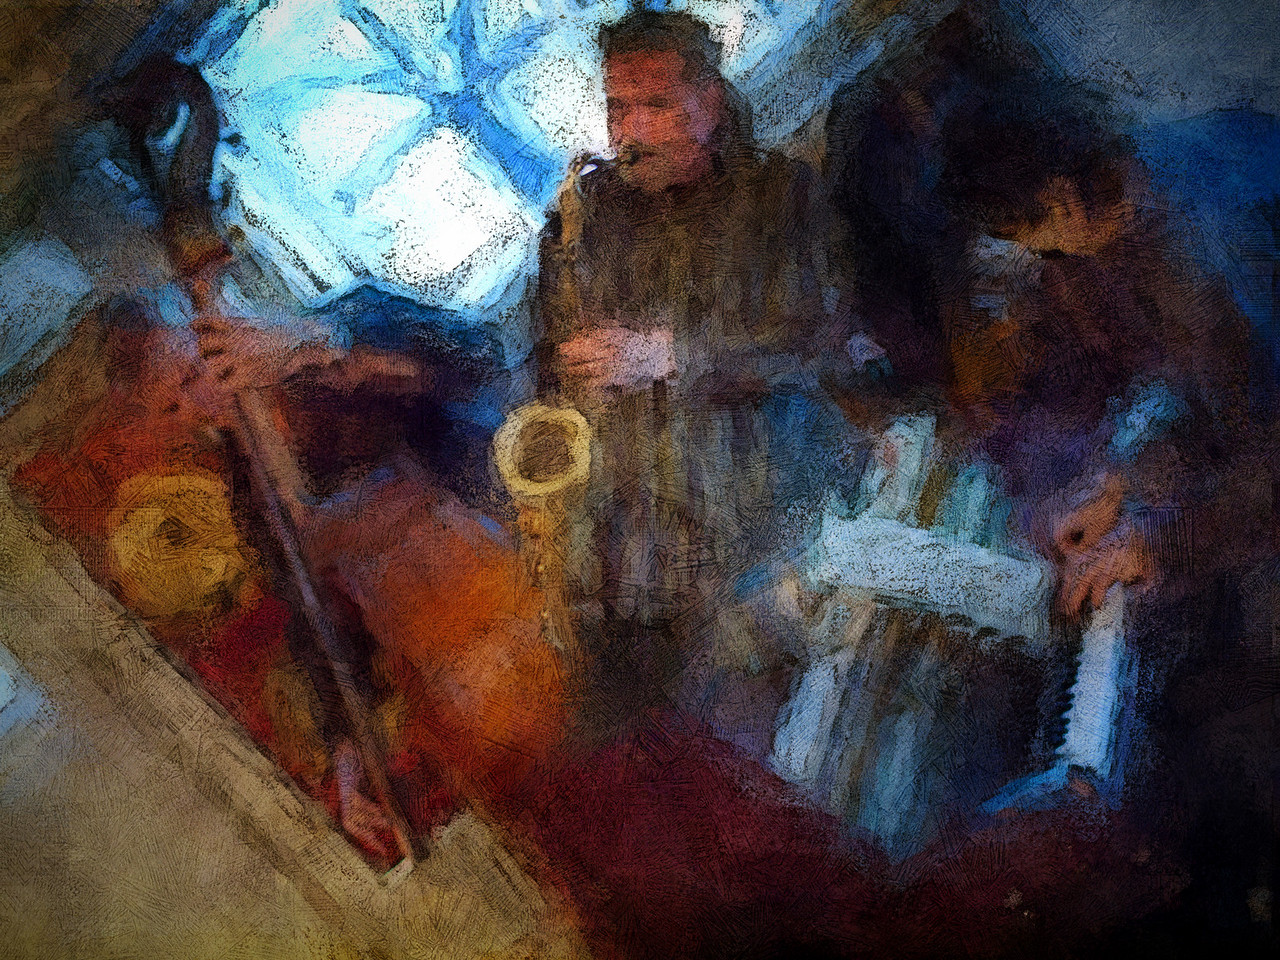 """Tilted Swing.<br /> Lennart Ginman: bass, Tomas Franck: sax and Ben Besiakov: piano at """"Sofiekælderen"""", Copenhagen,Denmark.<br /> Photo painted with digital chalk brush in Corel Painter + texture + photocopy layer."""